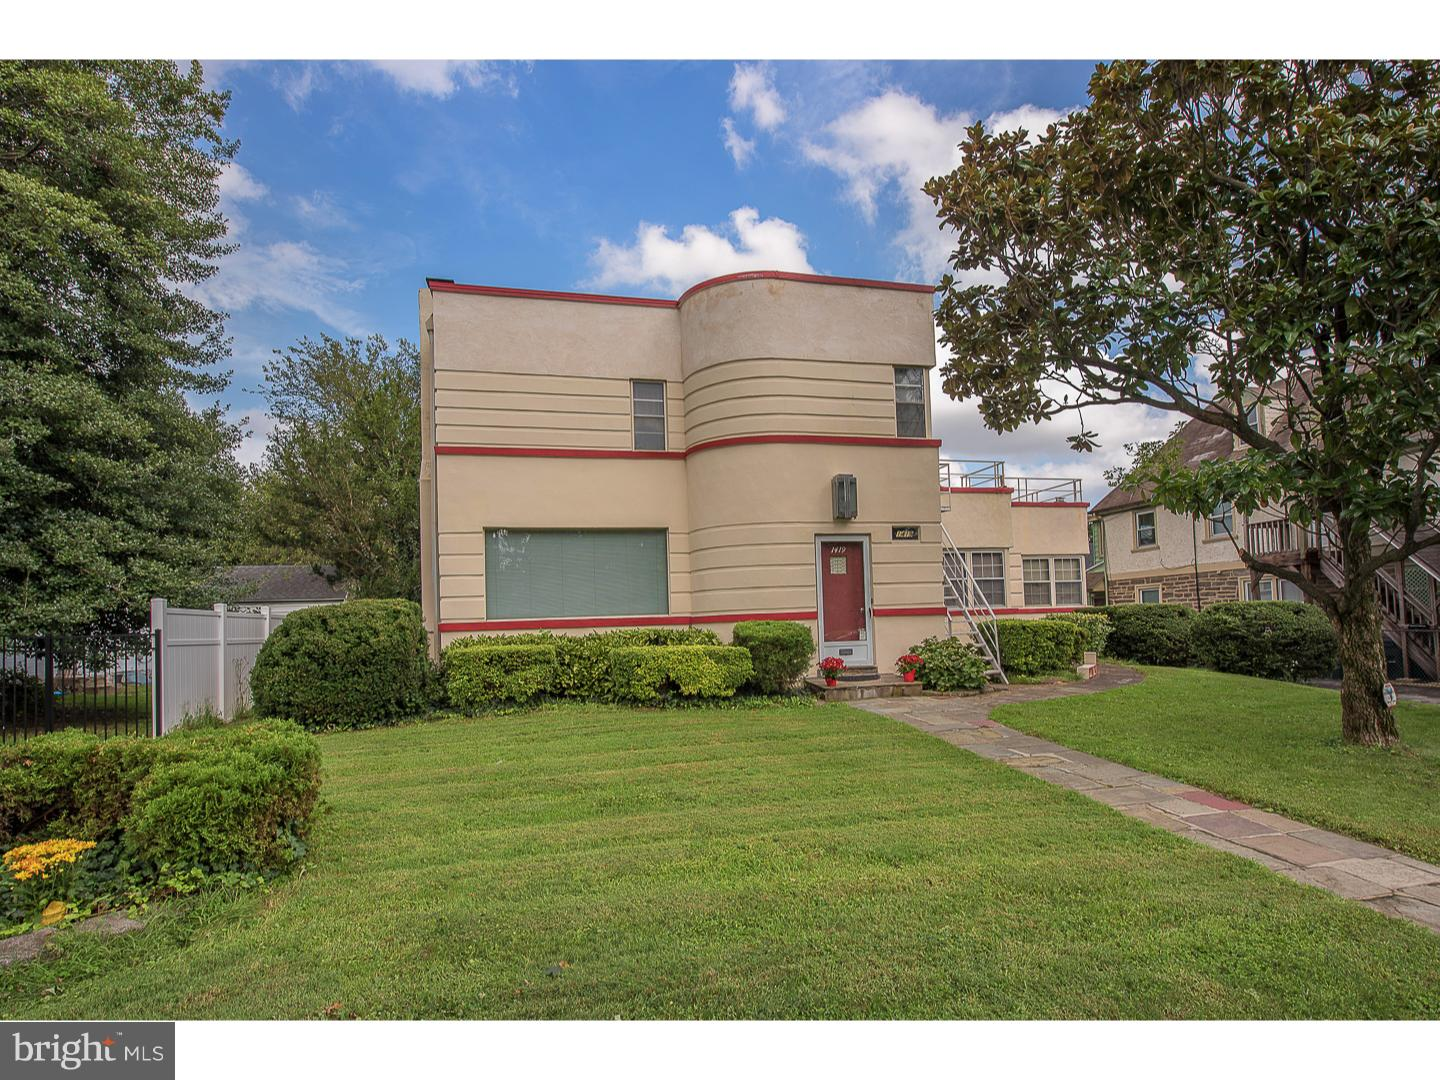 1419 E DARBY ROAD, HAVERTOWN, PA 19083